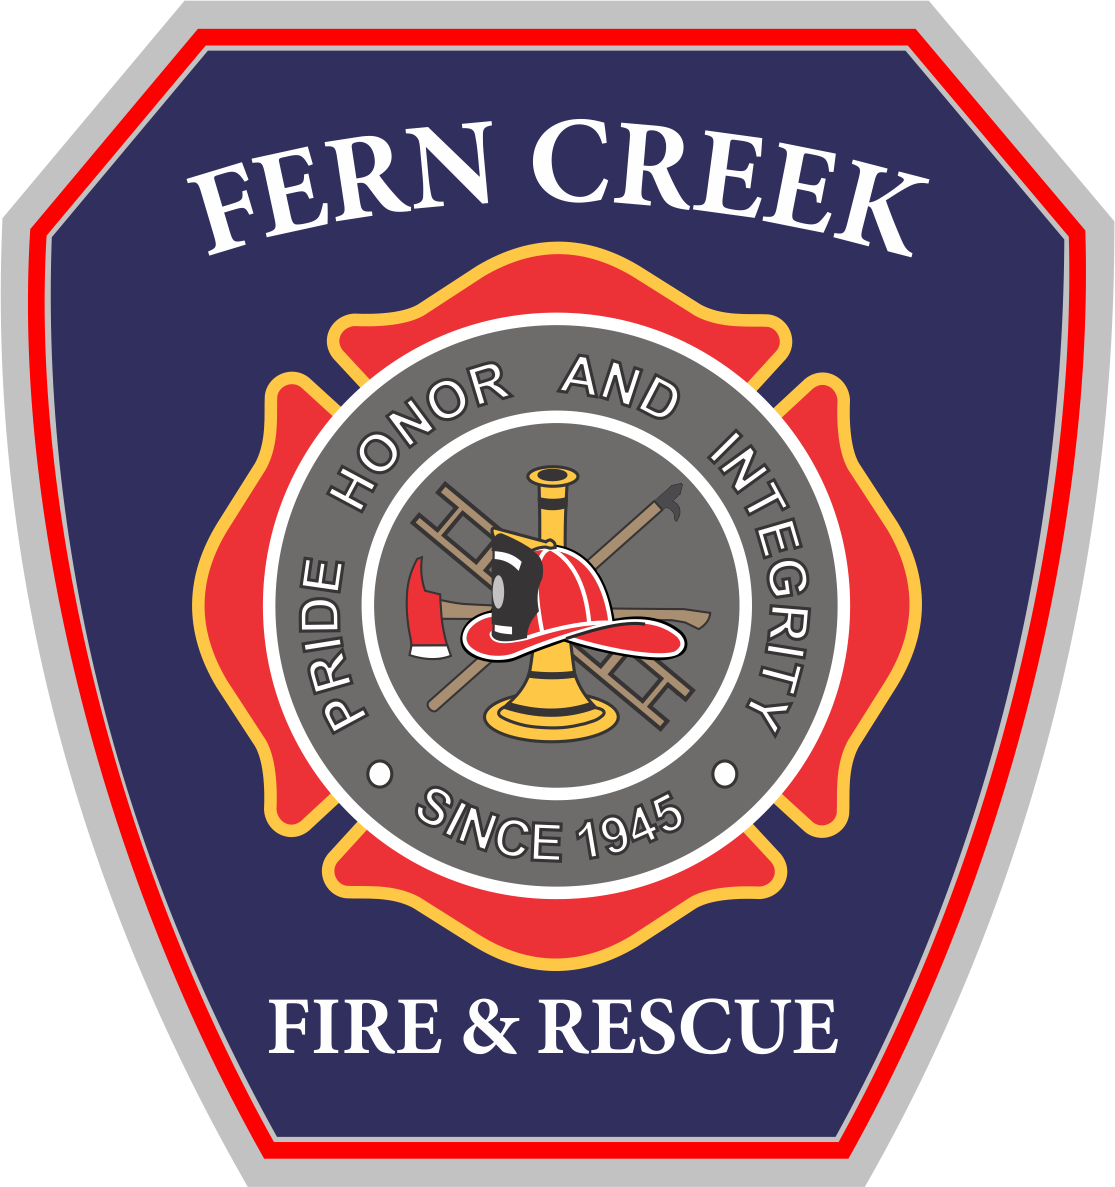 Fern Creek Fire Department